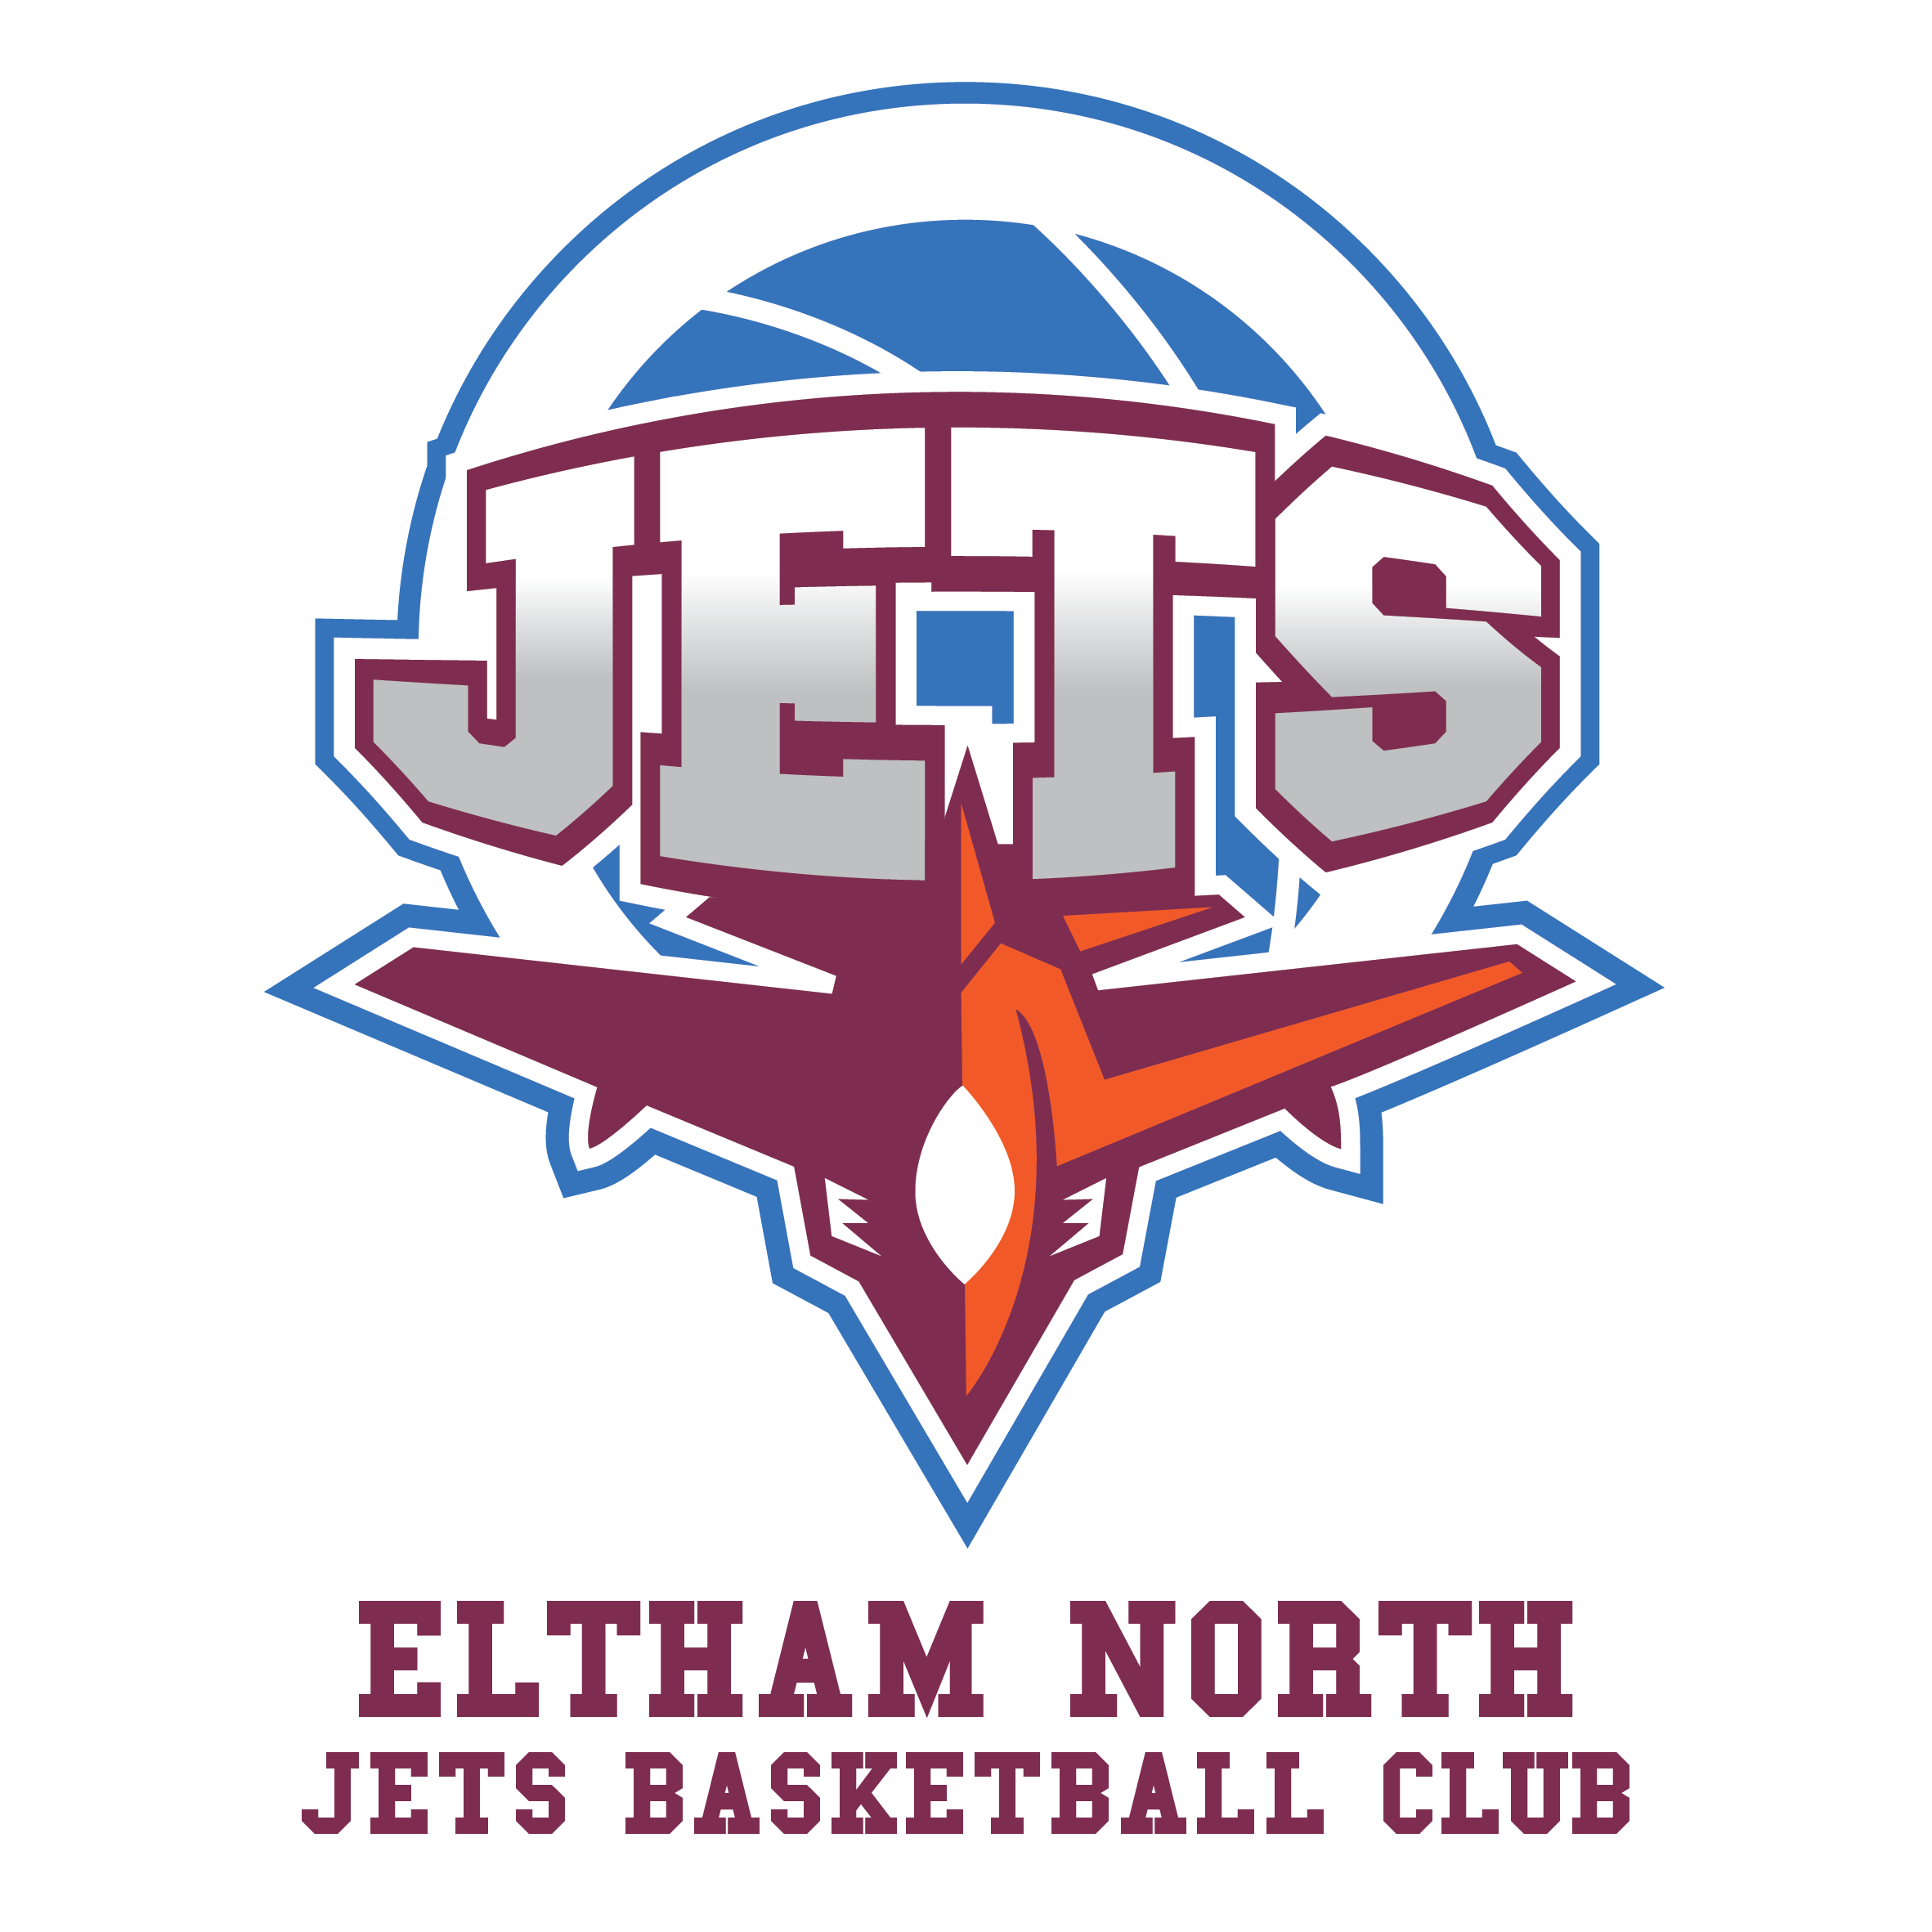 Eltham North Jets Basketball Club Logo_With Name